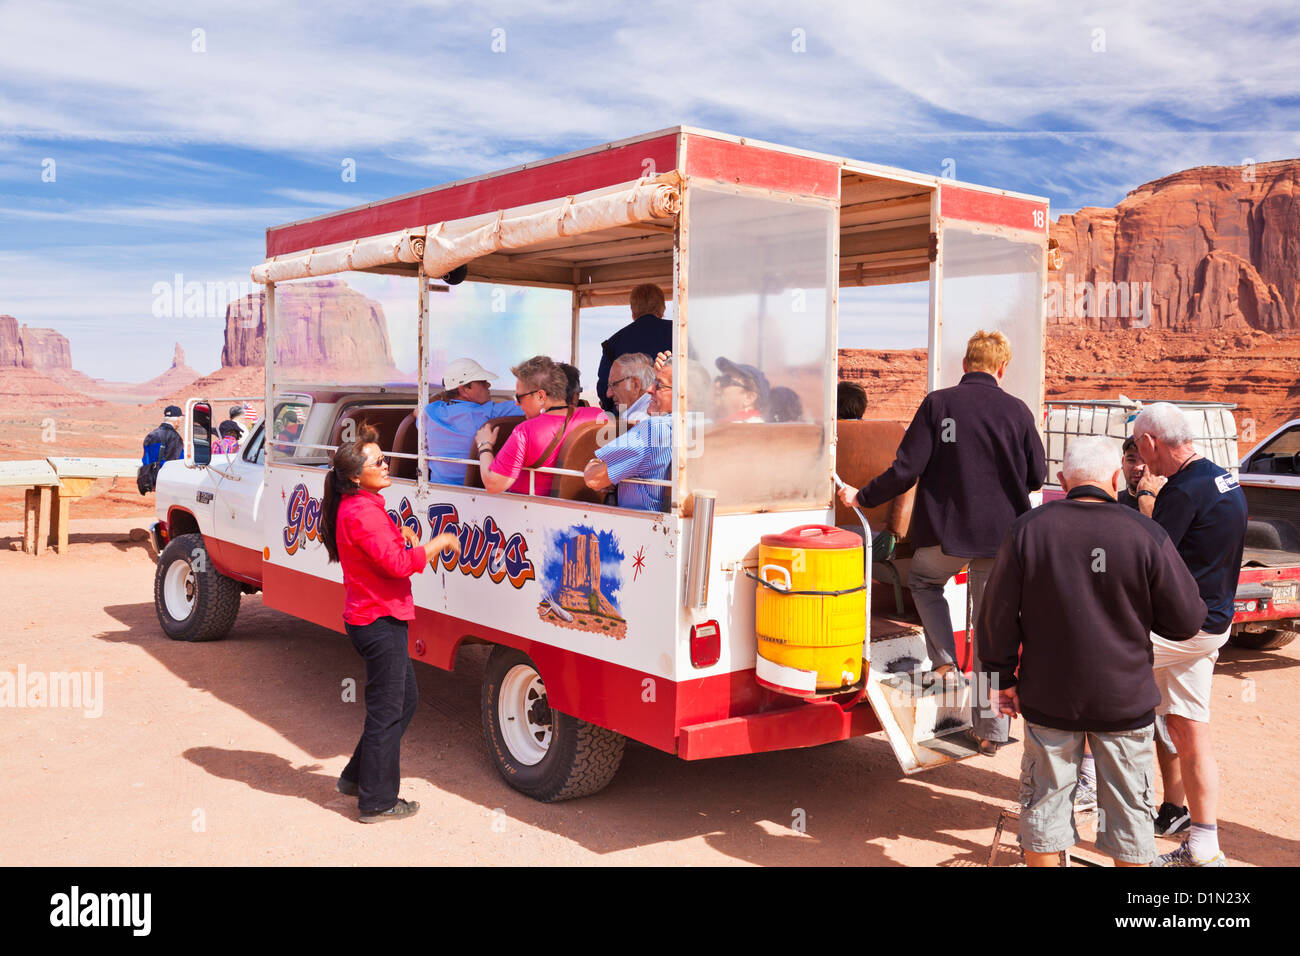 Tourists on a Jeep Tour around the Mittens and Buttes of Monument Valley Utah and Arizona USA United States of America - Stock Image